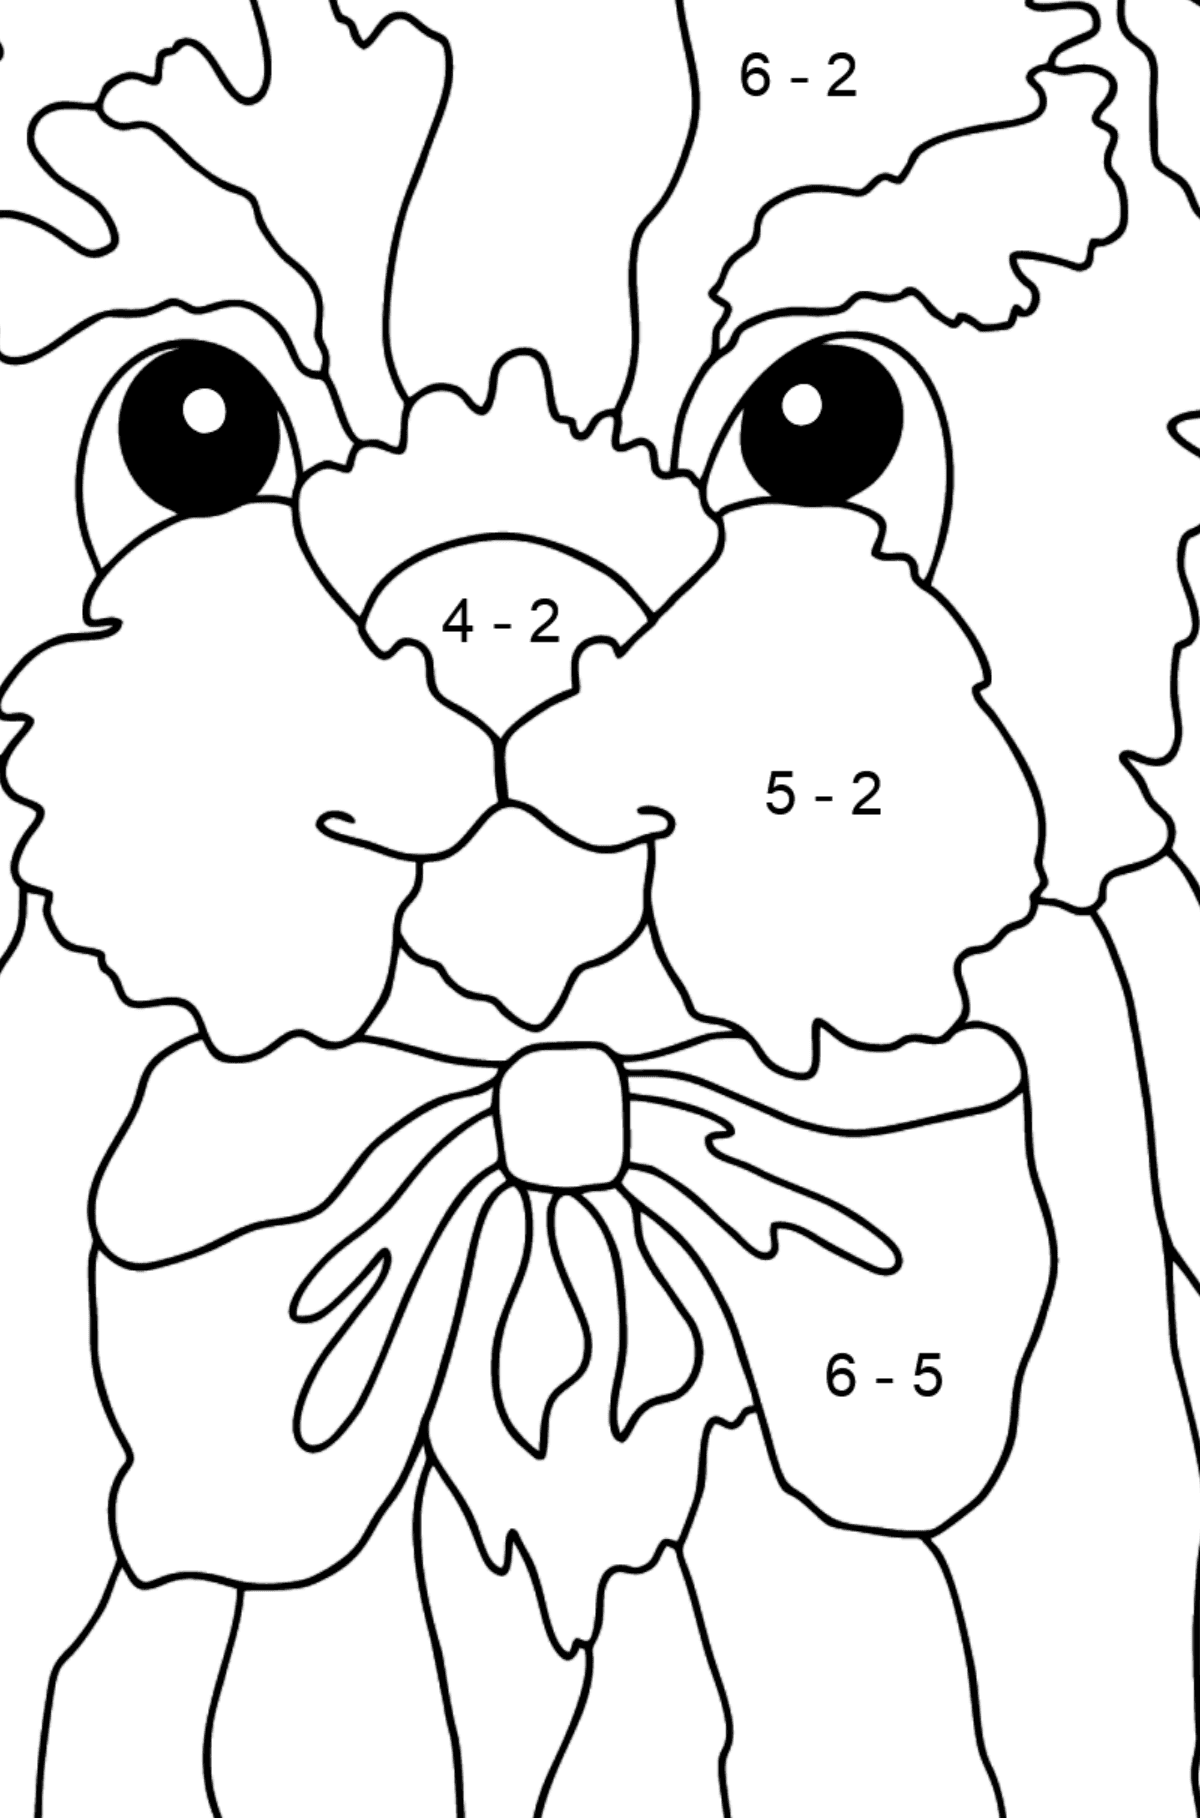 Coloring Page - A Young Fluffy Dog - Math Coloring - Subtraction for Kids